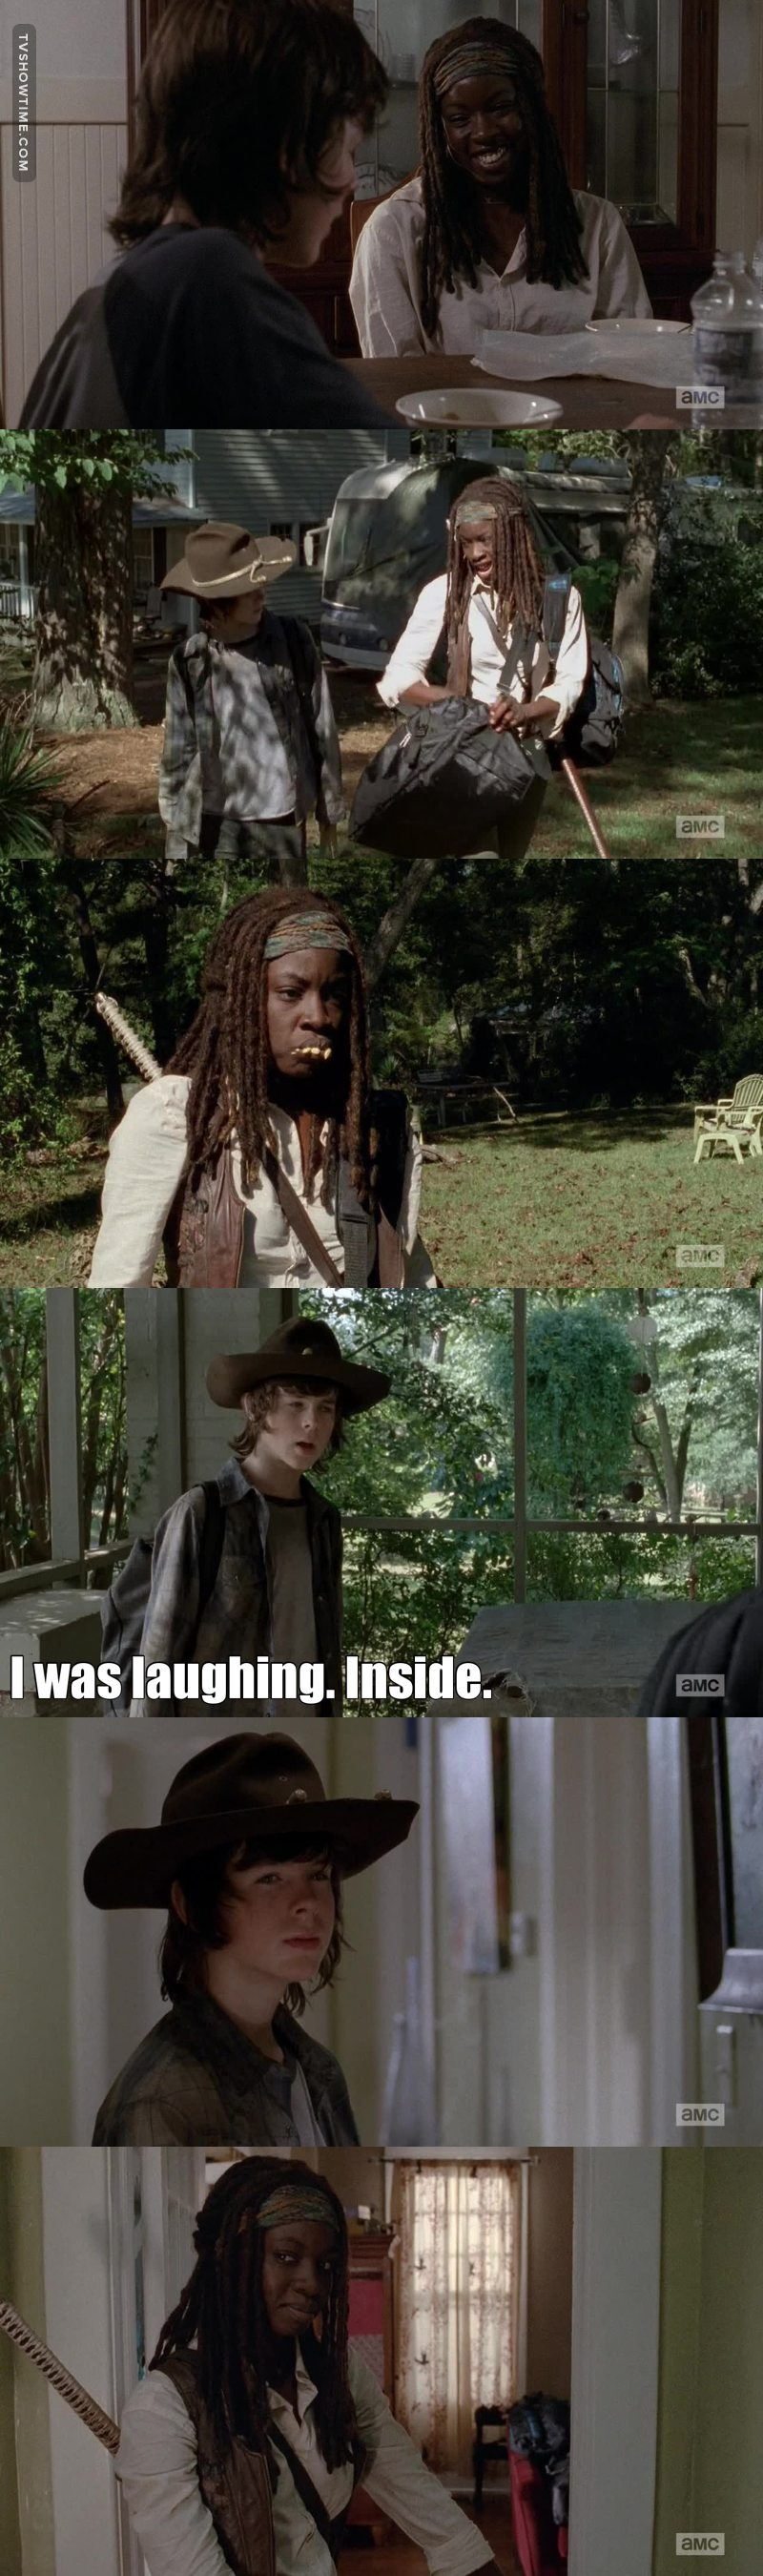 Michonne is amazing. I love her 😍❤️ and i love her relationship with Carl